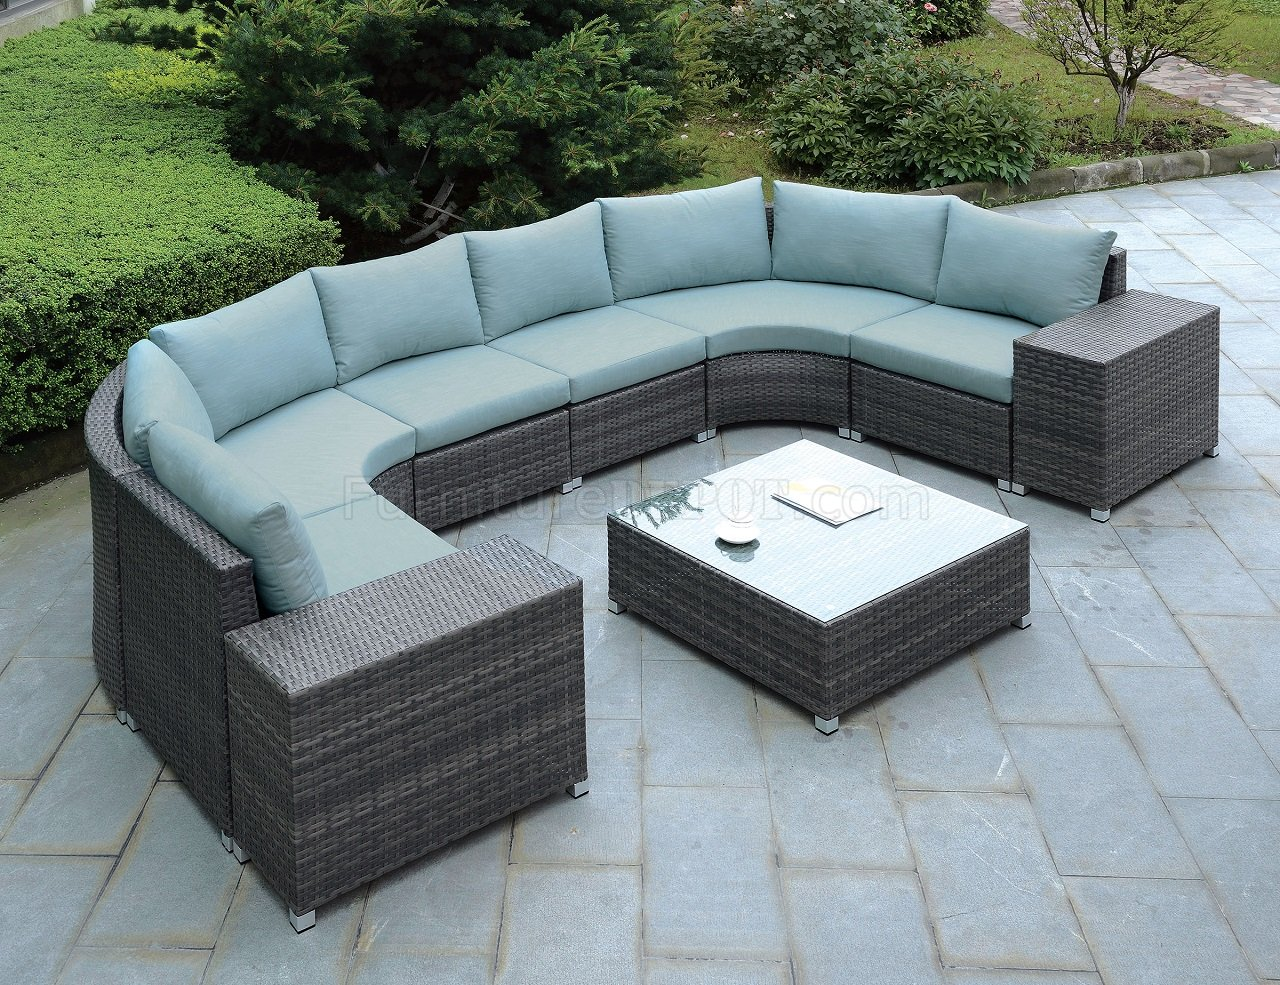 Outdoor Couches Morgana Cm Os2121 U Outdoor Patio Sectional Sofa W Coffee